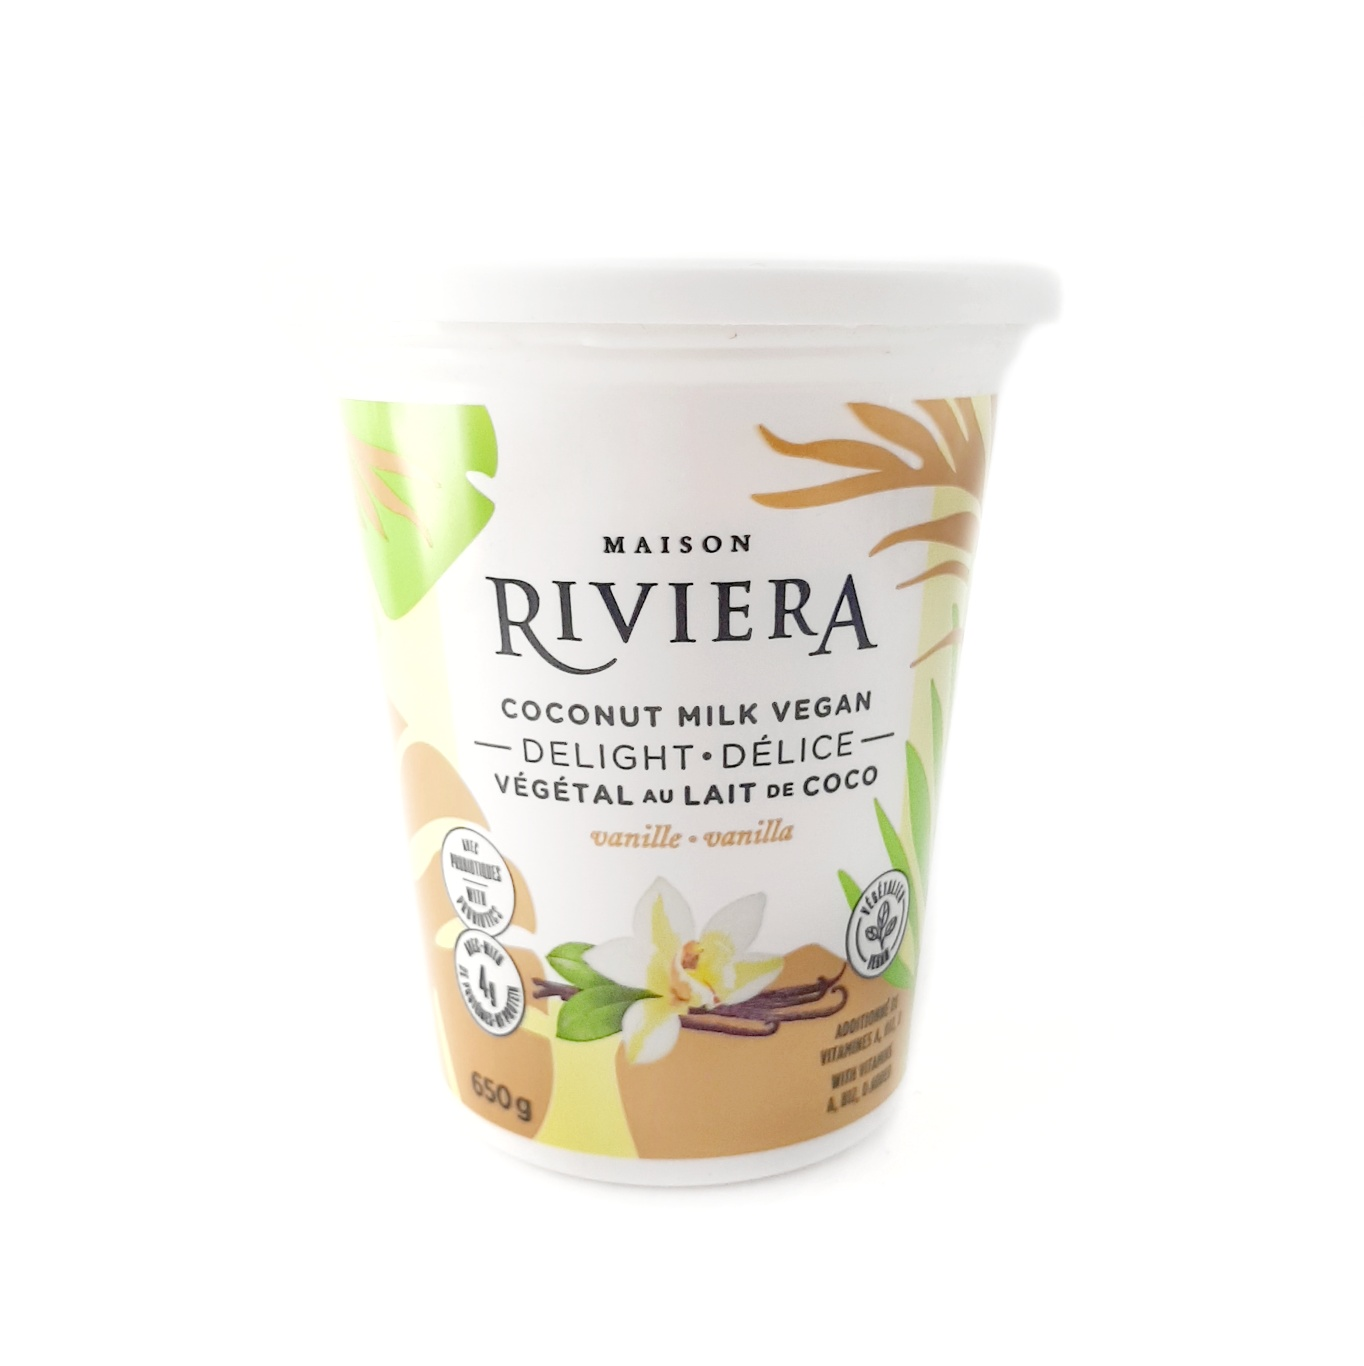 image of a tub of vegan yogurts from the Maison Riviera brand